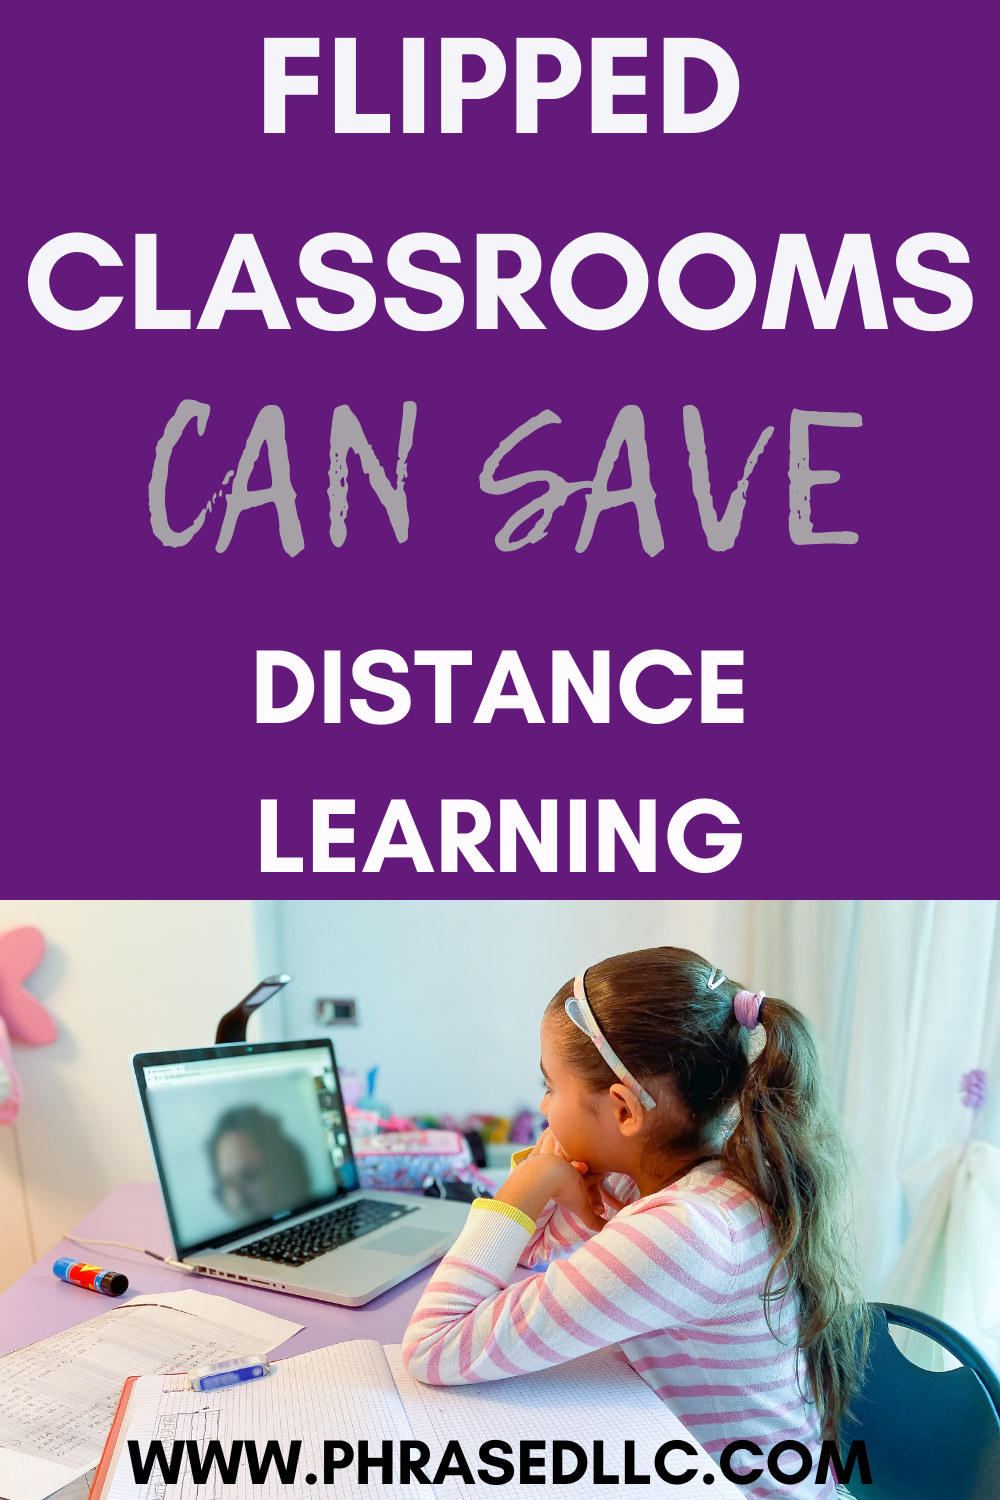 Flipped classrooms are the answer to distance learning. Take your instructional time back and give students the same group and differentiation they so desperately need.